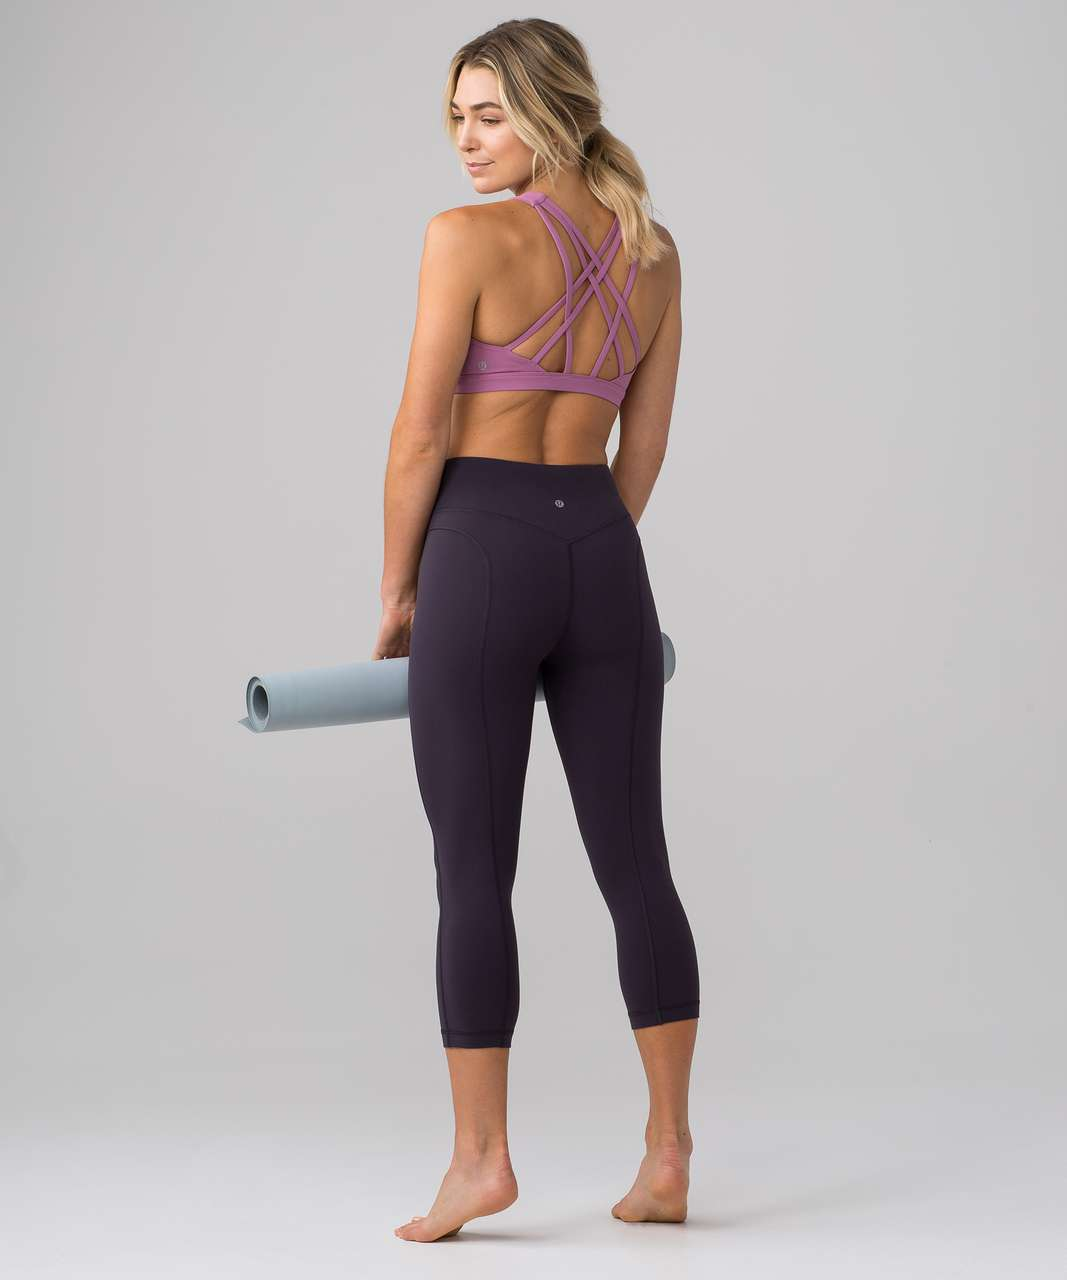 Lululemon Free To Be Serene Bra - Velvet Dust